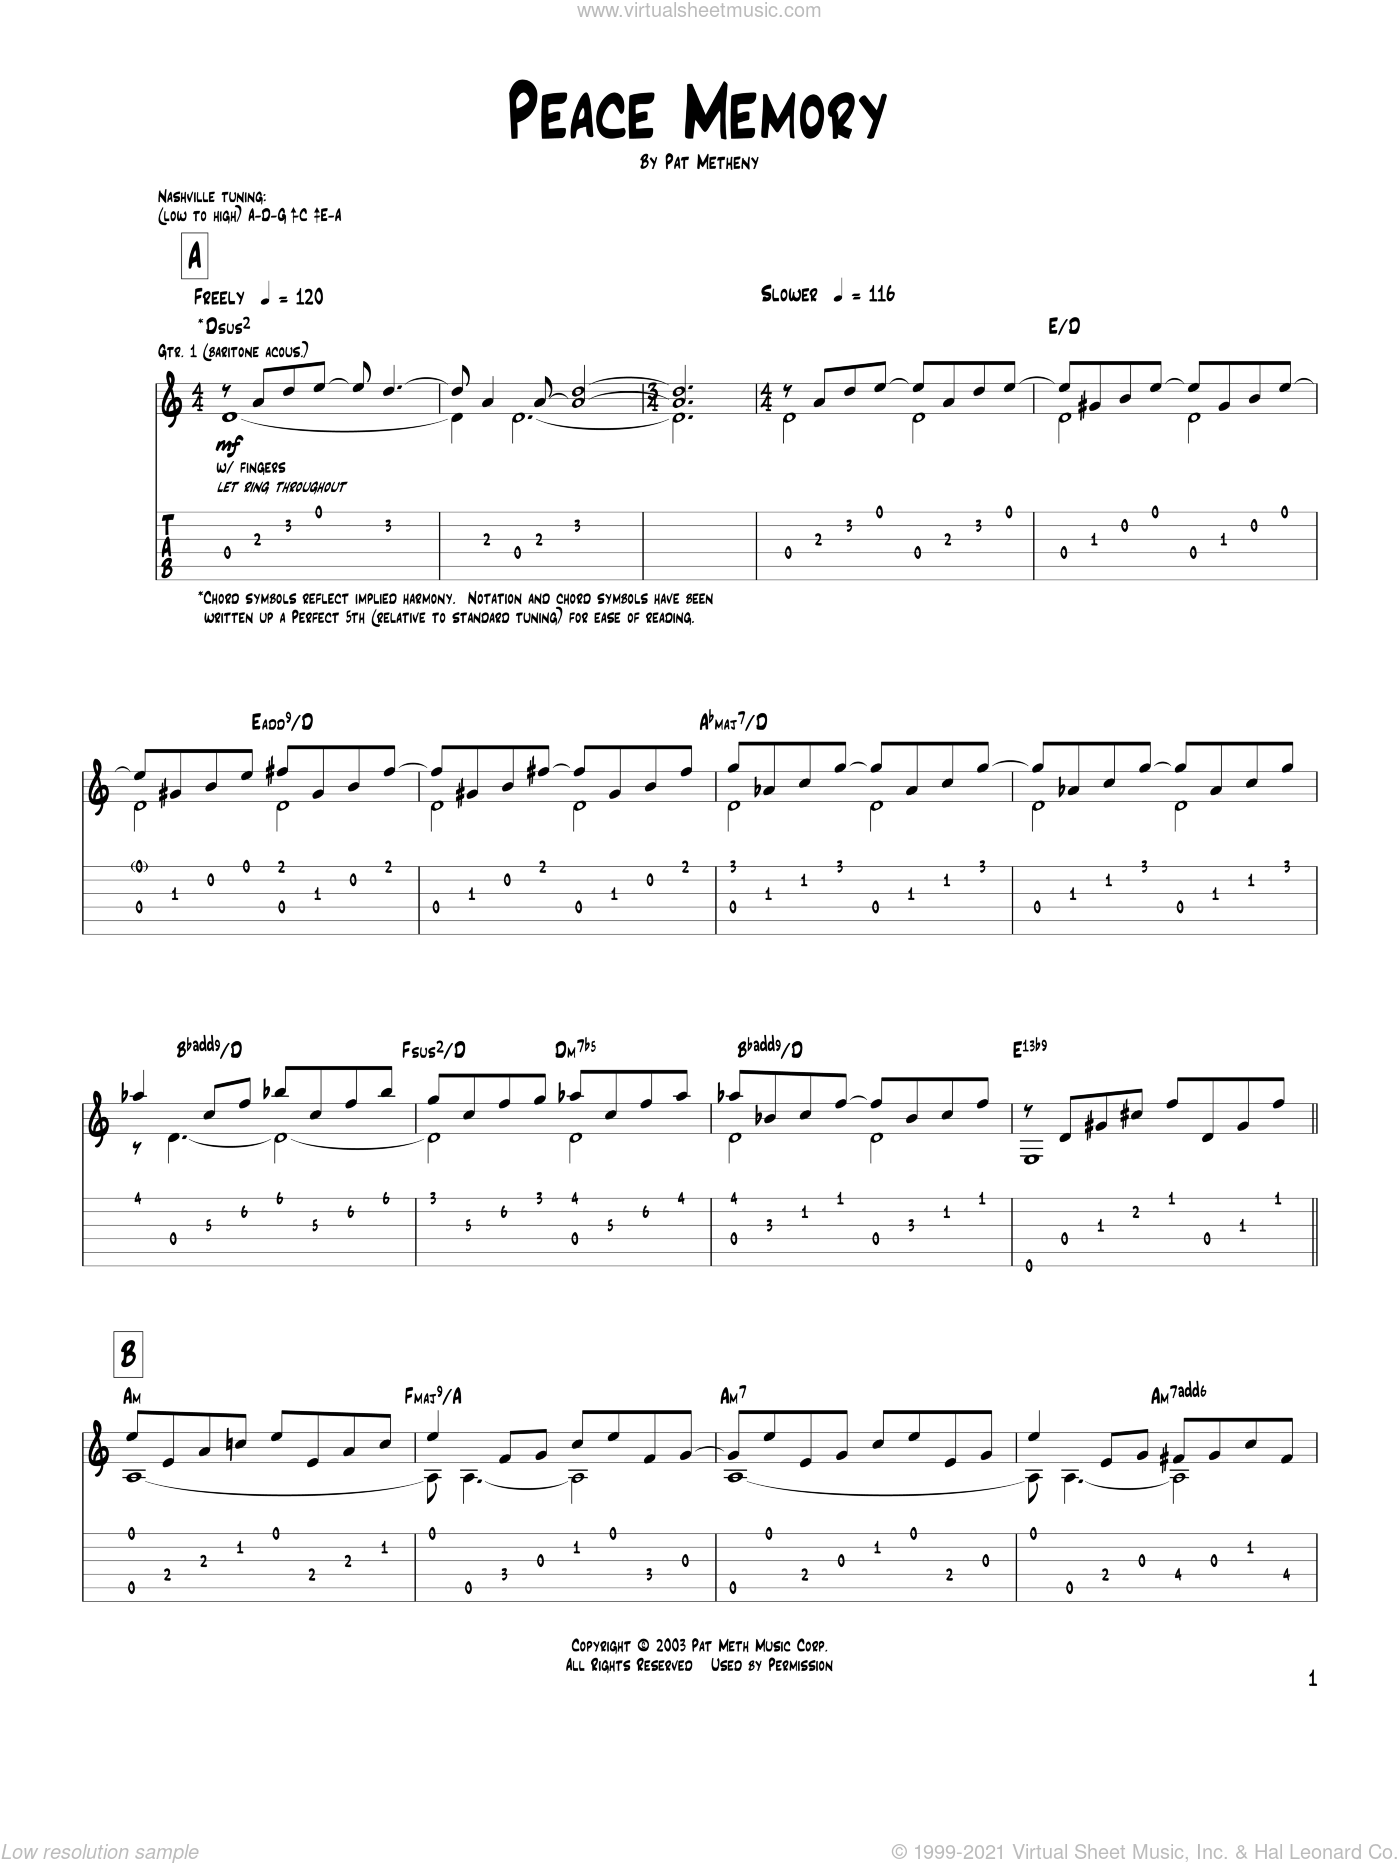 Peace Memory sheet music for guitar (tablature) by Pat Metheny. Score Image Preview.